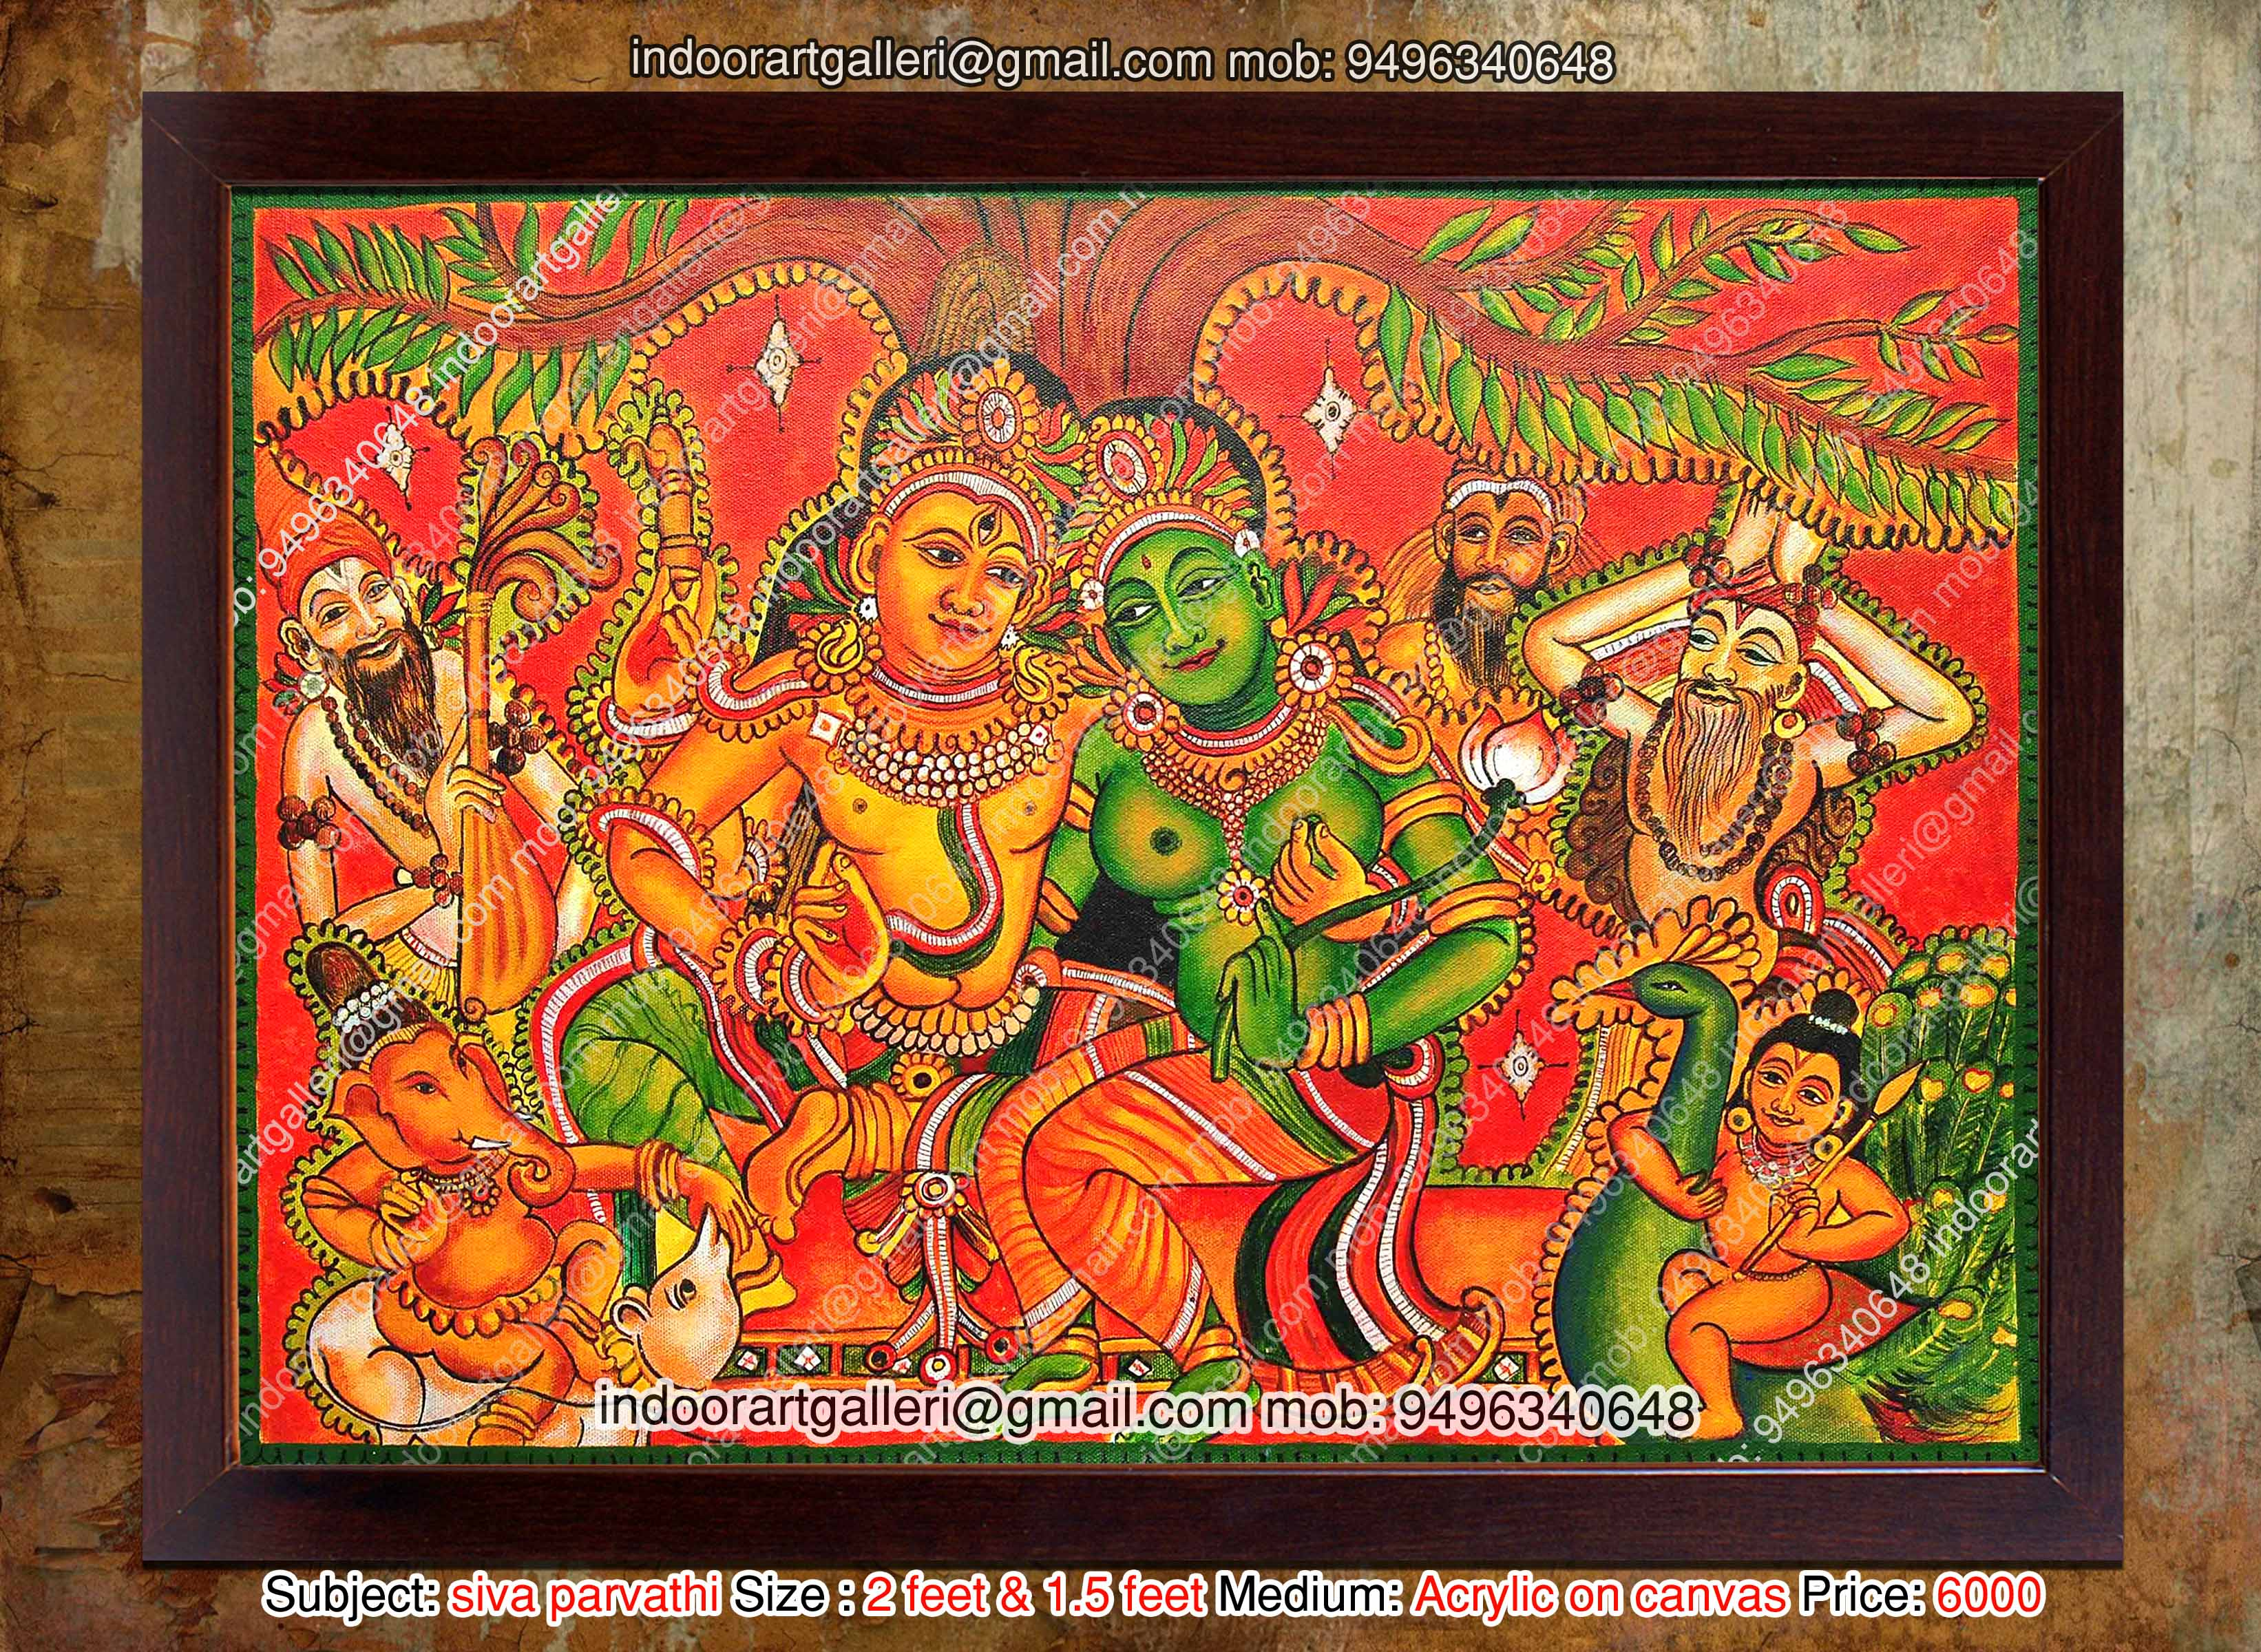 Siva parvathi mural painting flickr photo sharing for Buy kerala mural paintings online